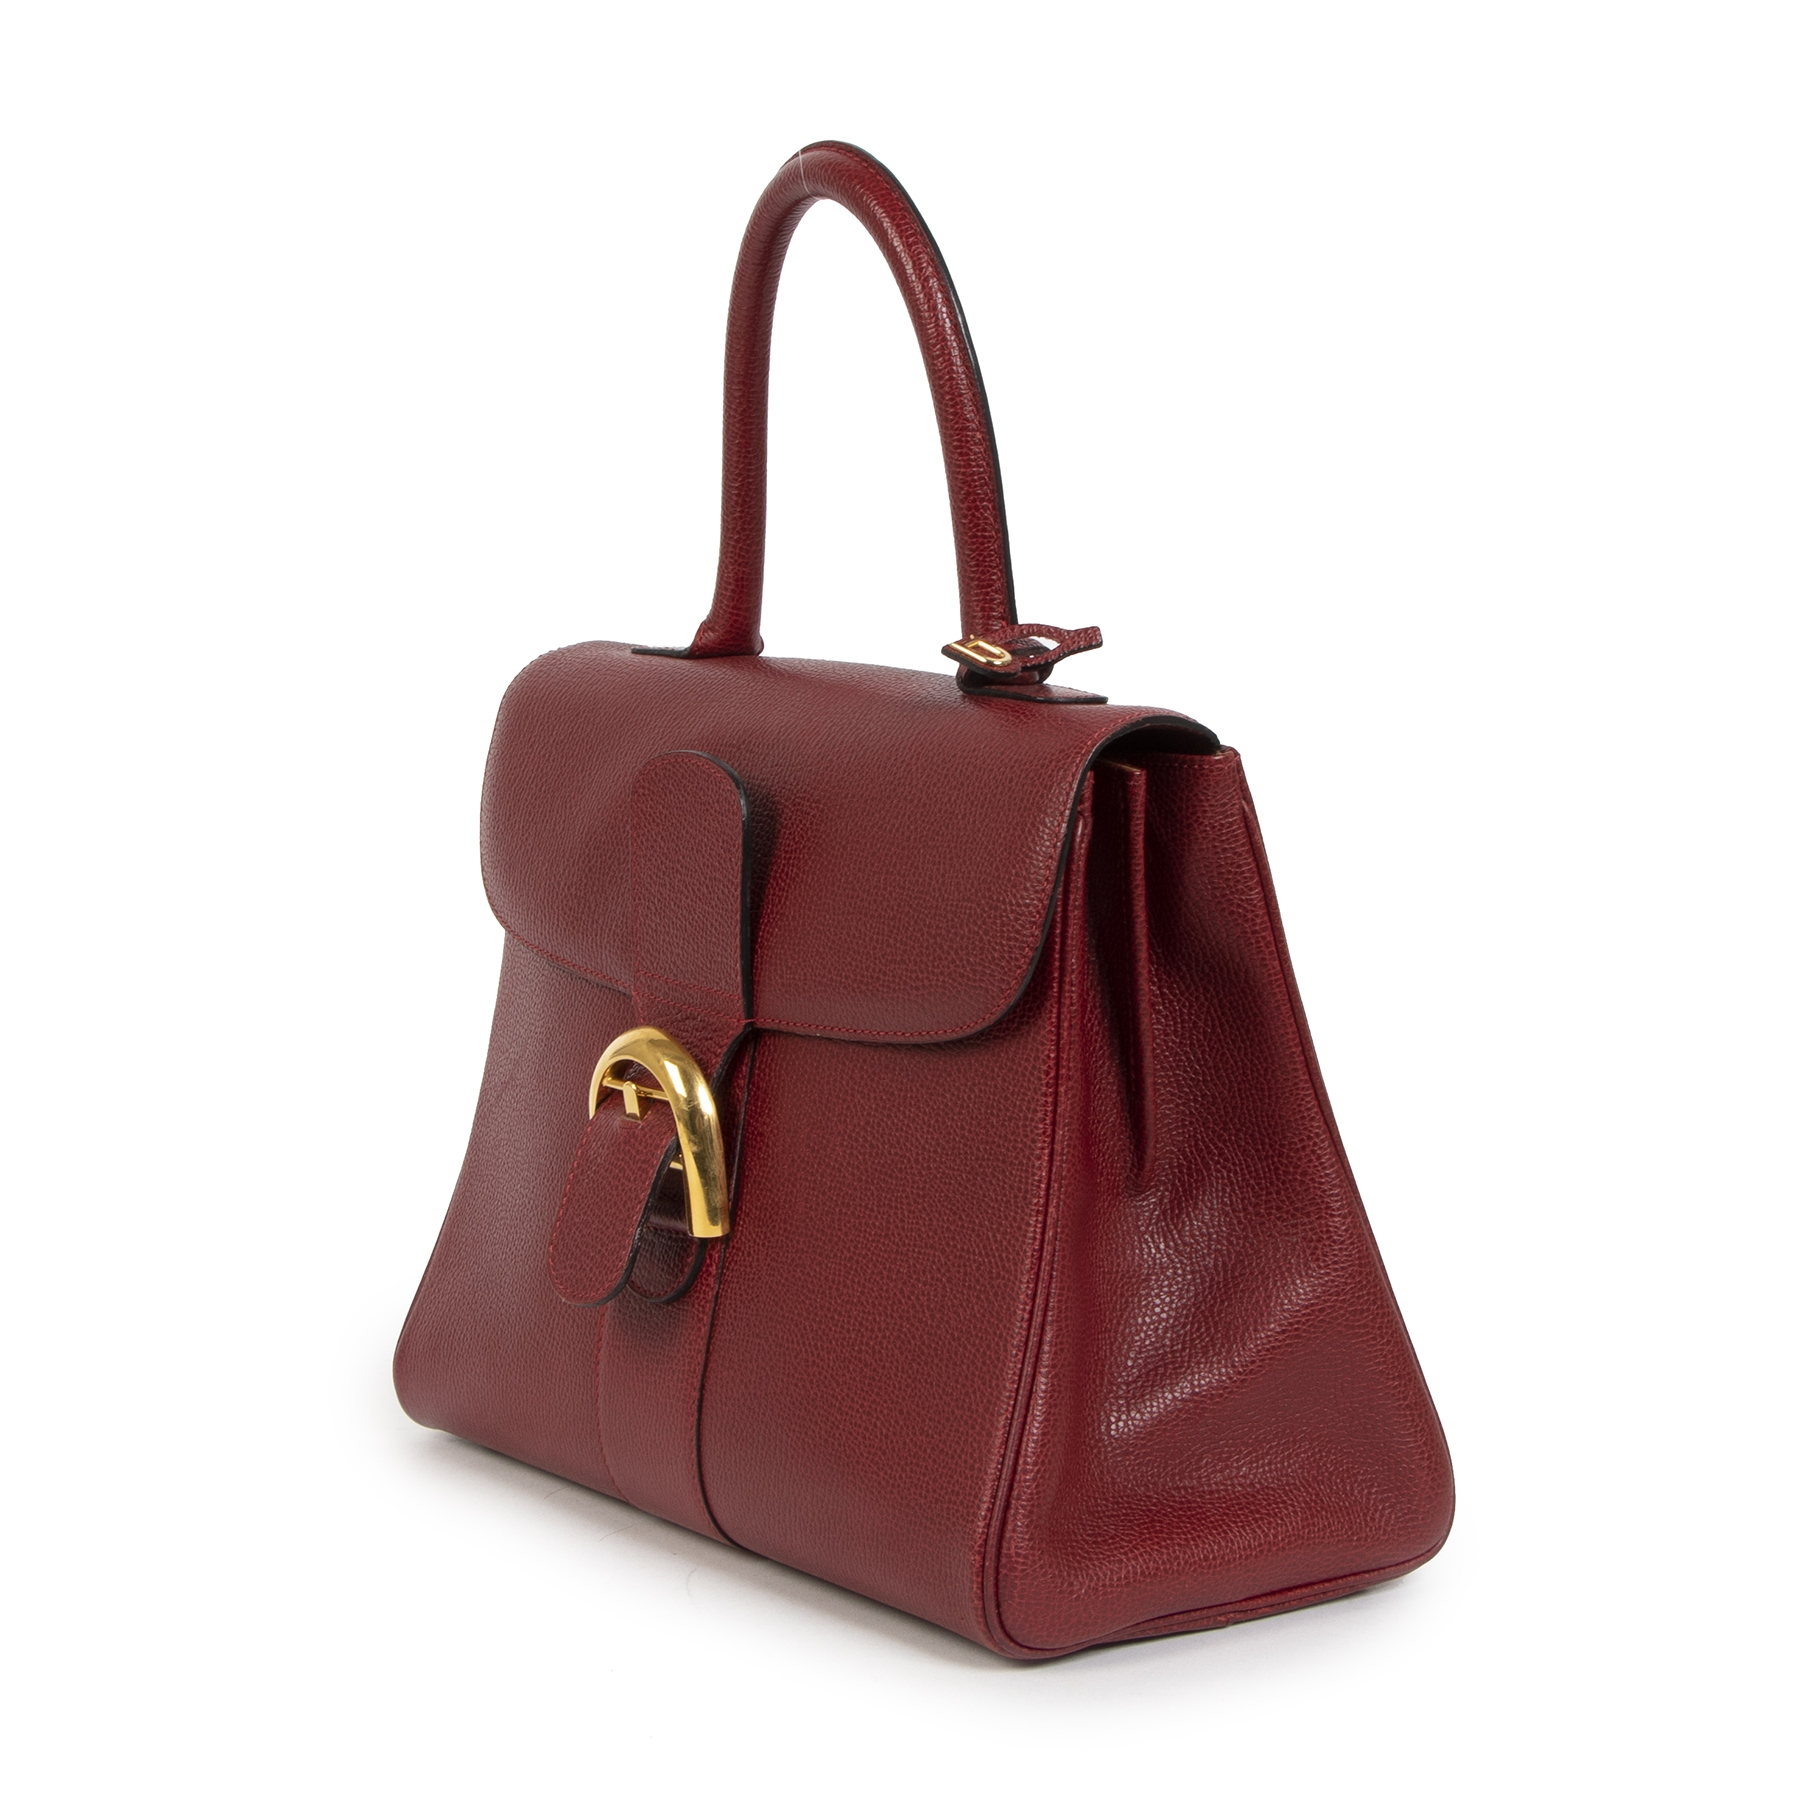 Buy authentic secondhand Delvaux Brillant Burgundy MM GHW at the right price at LabelLOV vintage webshop. Safe and secure online shopping. Koop authentieke tweedehands Delvaux Brillant Red MM GHW met de juiste prijs bij LabelLOV